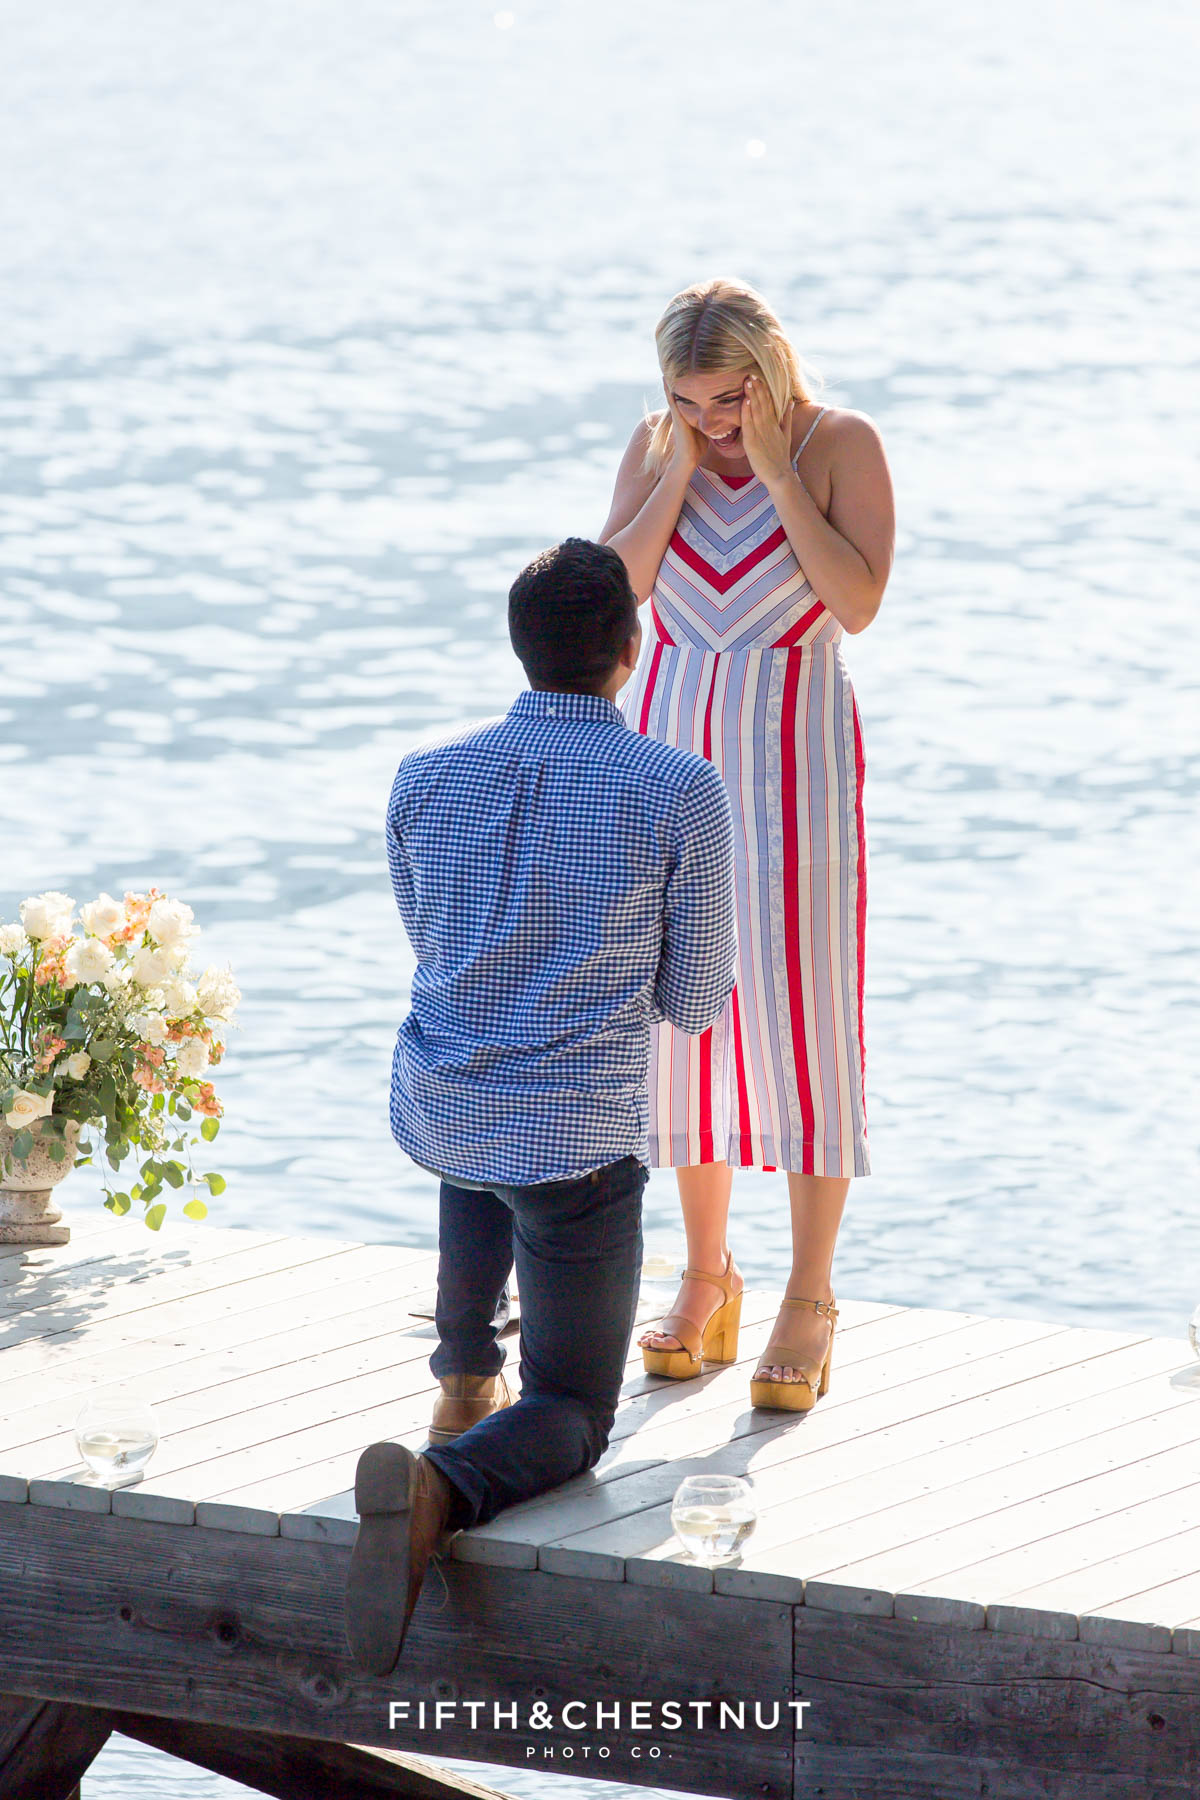 Man surprises girlfriend with a romantic proposal on Donner Lake on a warm summer day